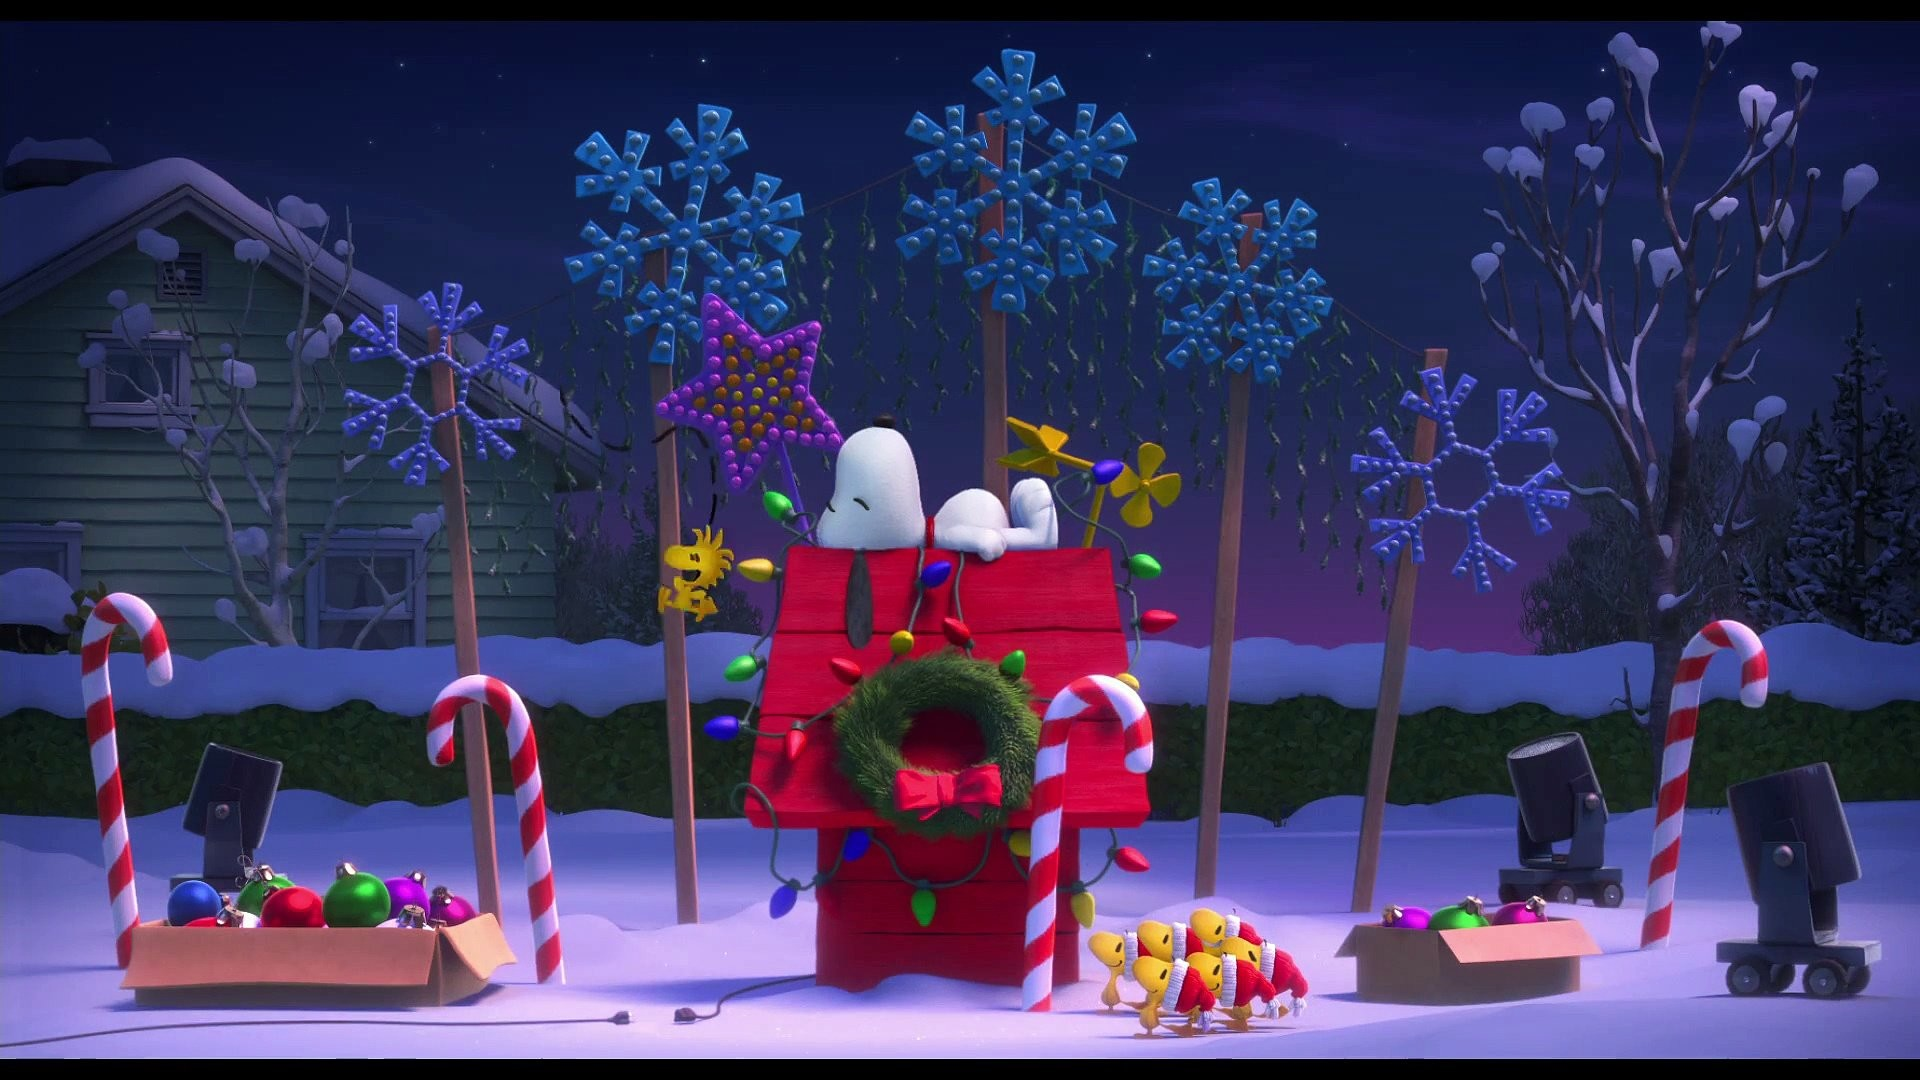 Snoopy Christmas Wallpaper for Computer 56 images 1920x1080